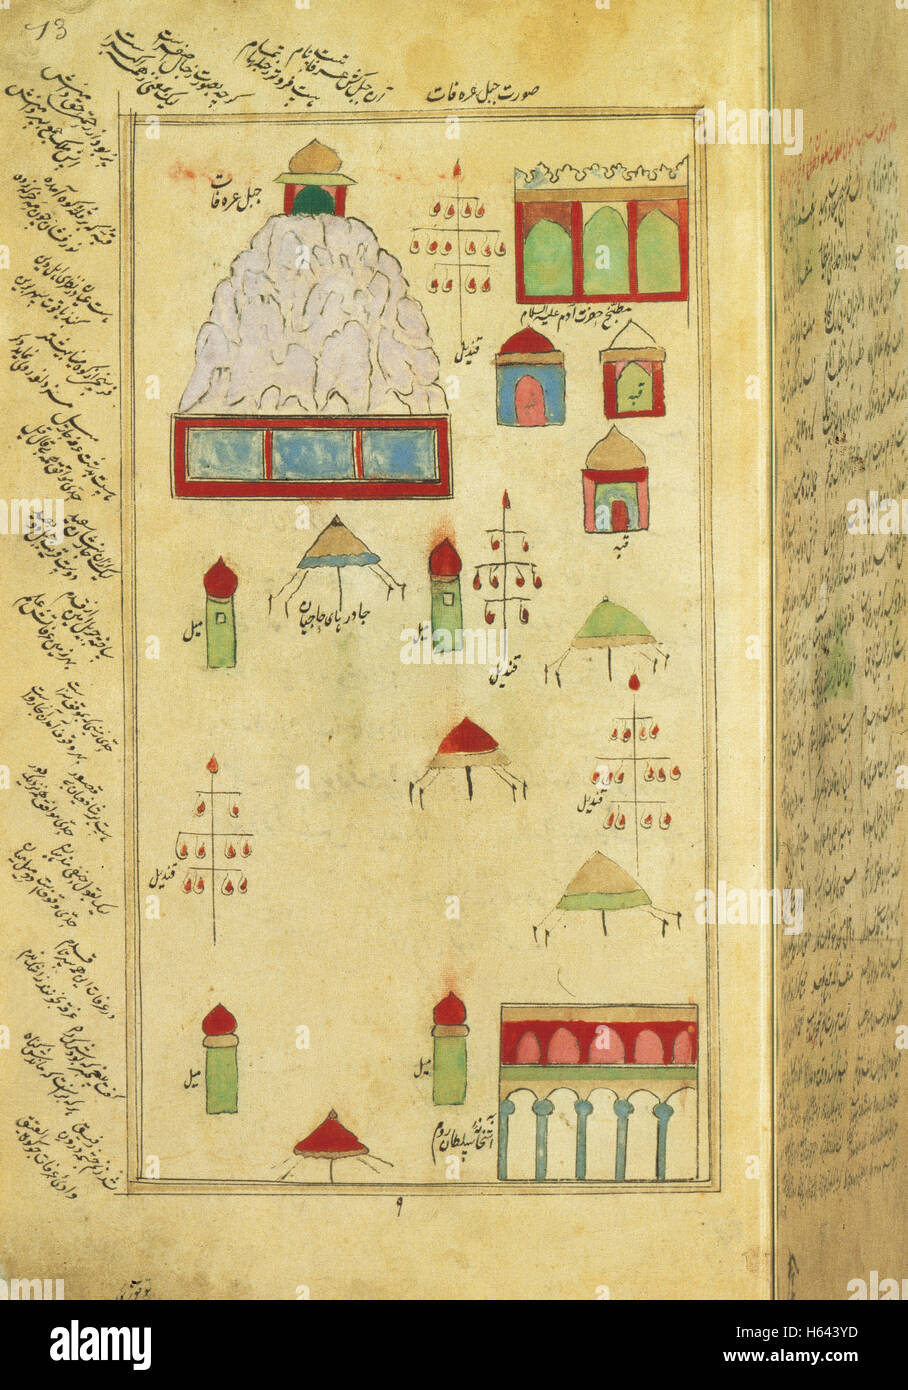 Kaaba. Mecca. Holy City of Islam. Miniature of a Persian manuscript, 17th century. National Library. Paris. France. - Stock Image